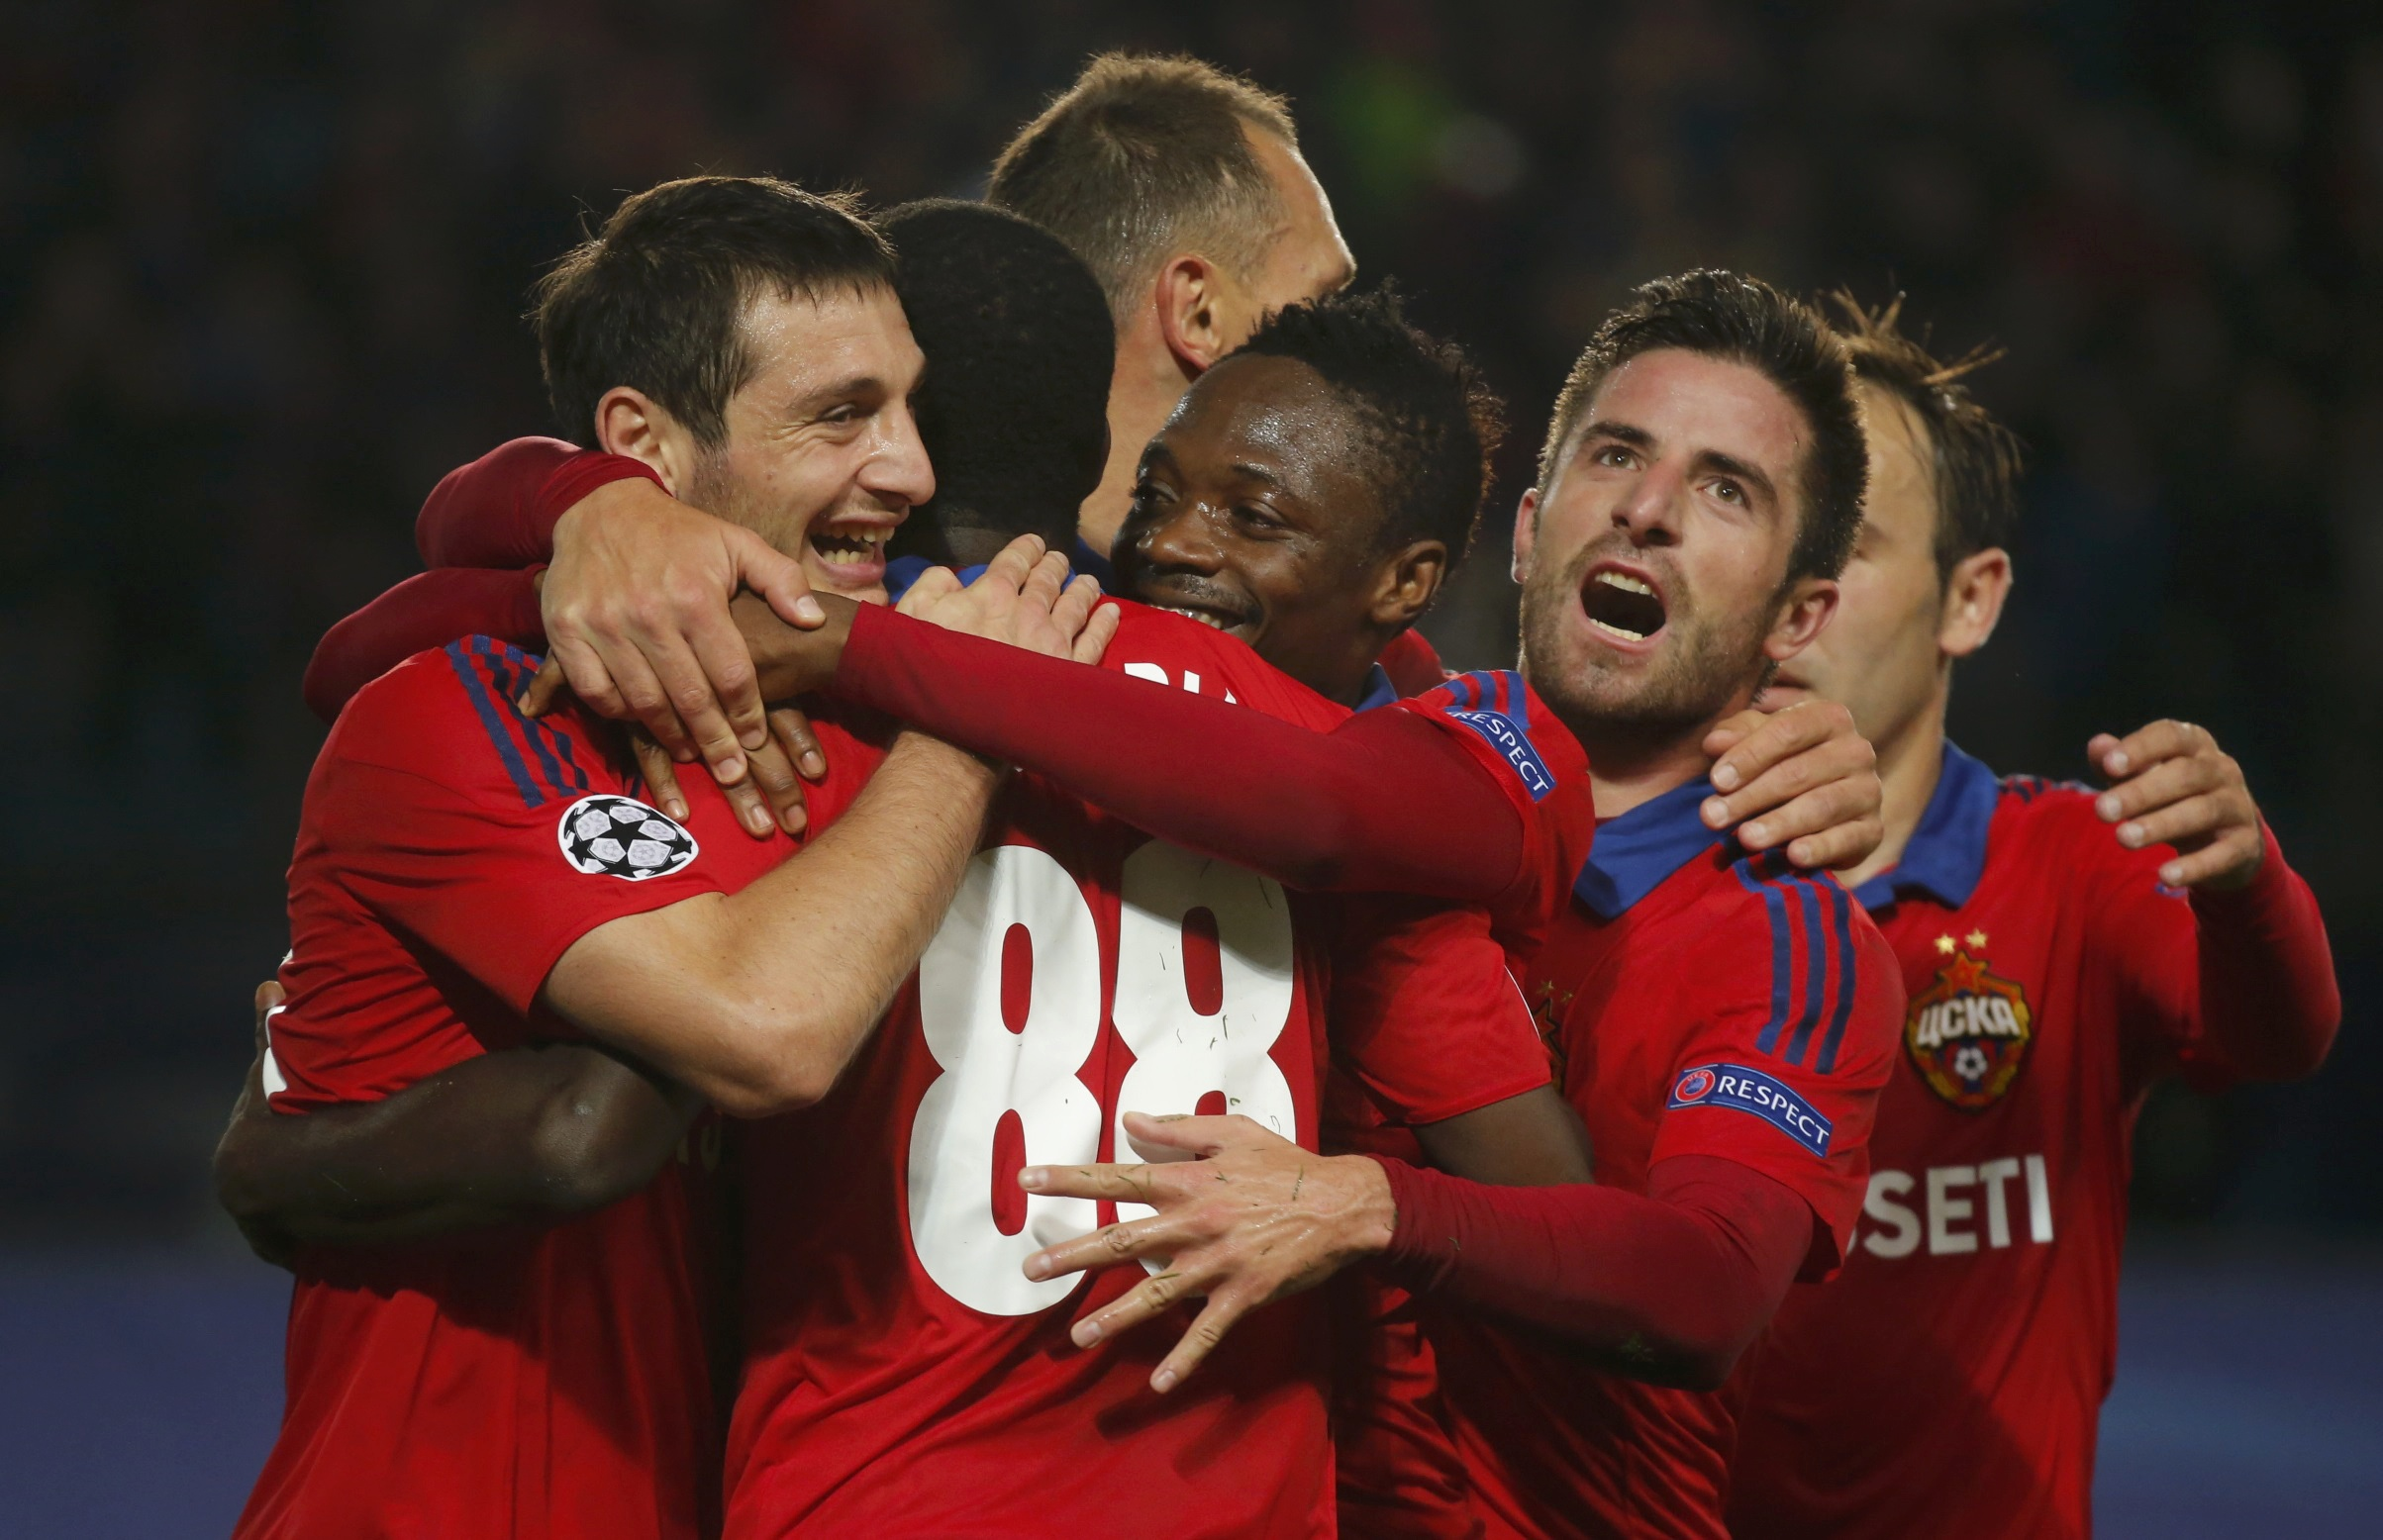 CSKA Moscow's Seydou Doumbia (2nd L) celebrates with his team mates after scoring a penalty kick against PSV Eindhoven during their Champions League group B soccer match at the Arena Khimki stadium outside Moscow, Russia, September 30, 2015. REUTERS/Maxim Shemetov